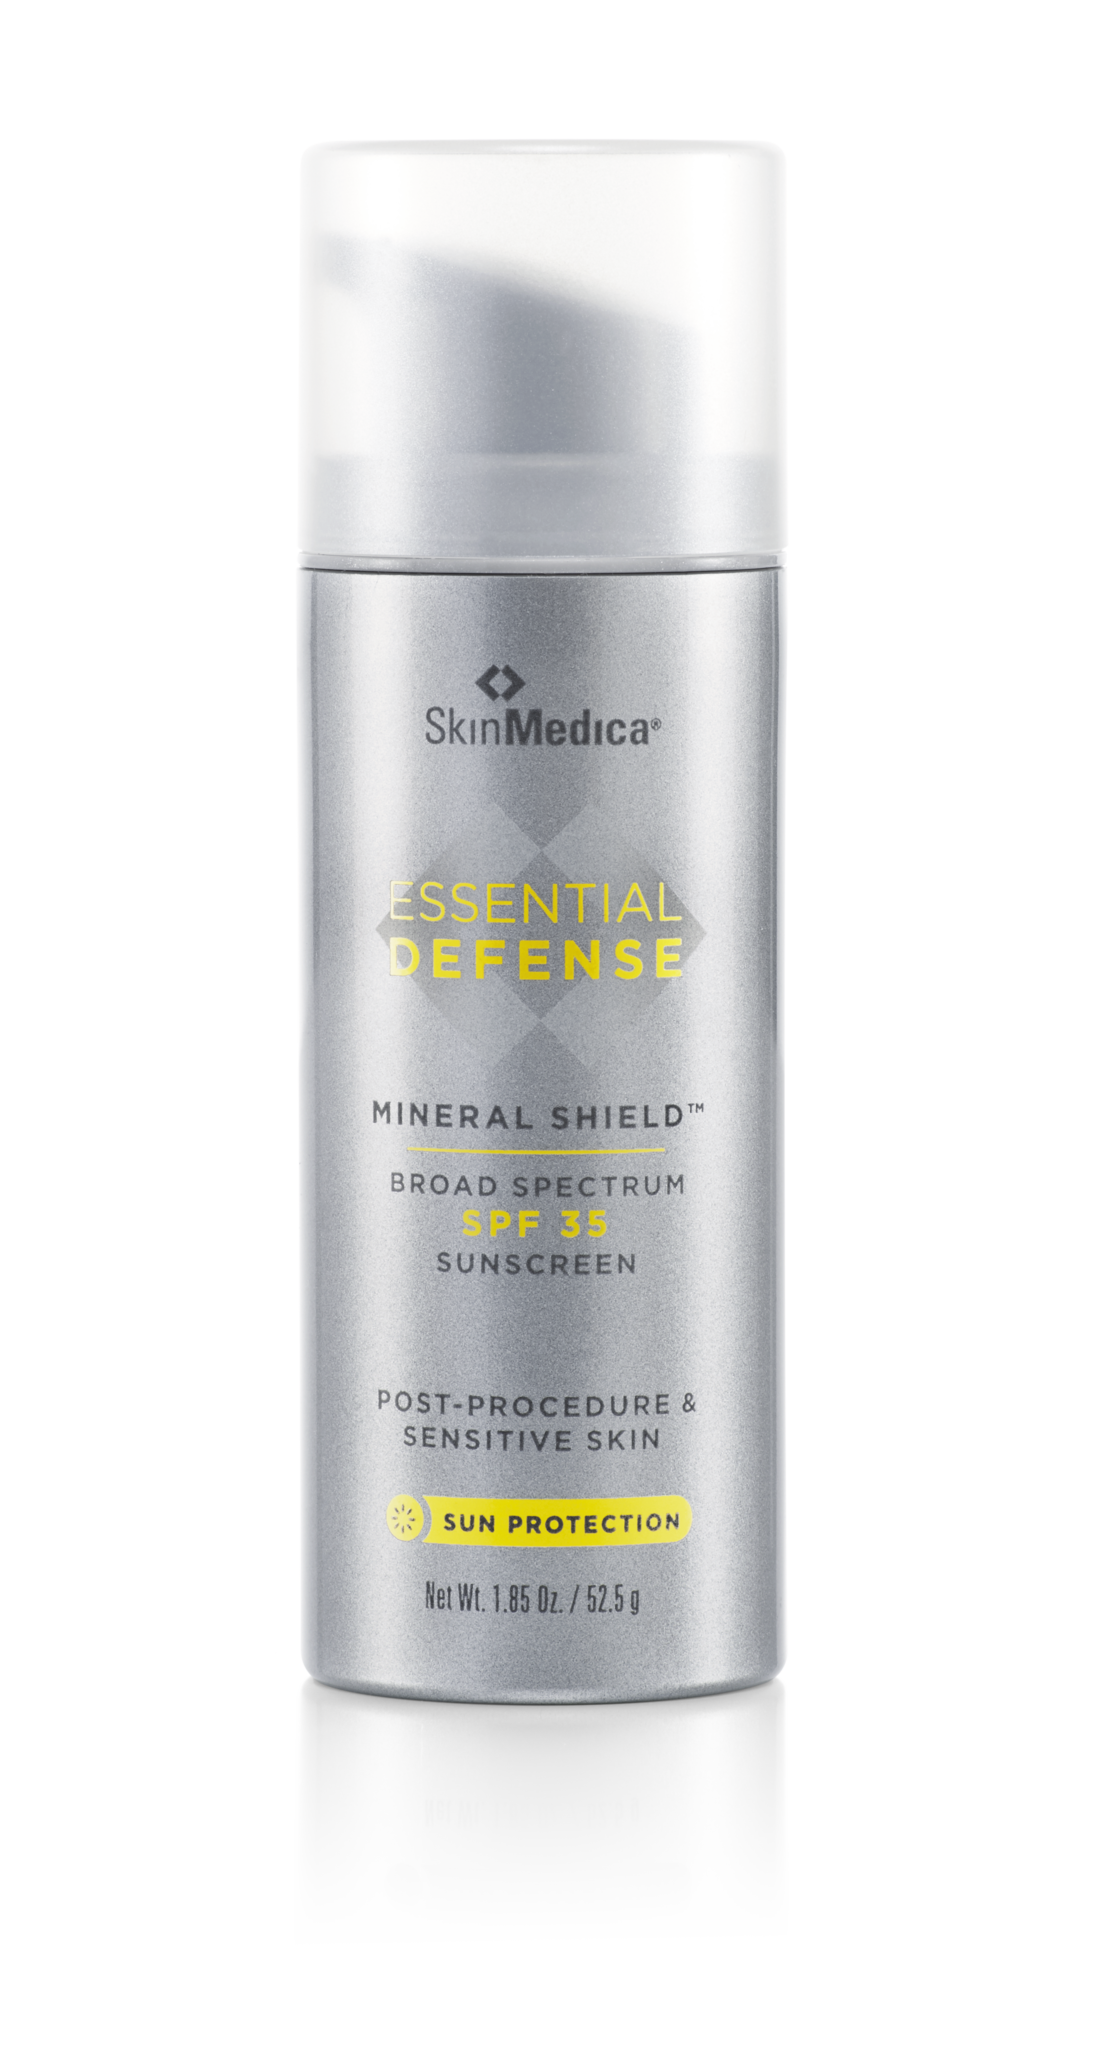 Skinmedica sunscreen - Always finish your morning routine with sunscreen.